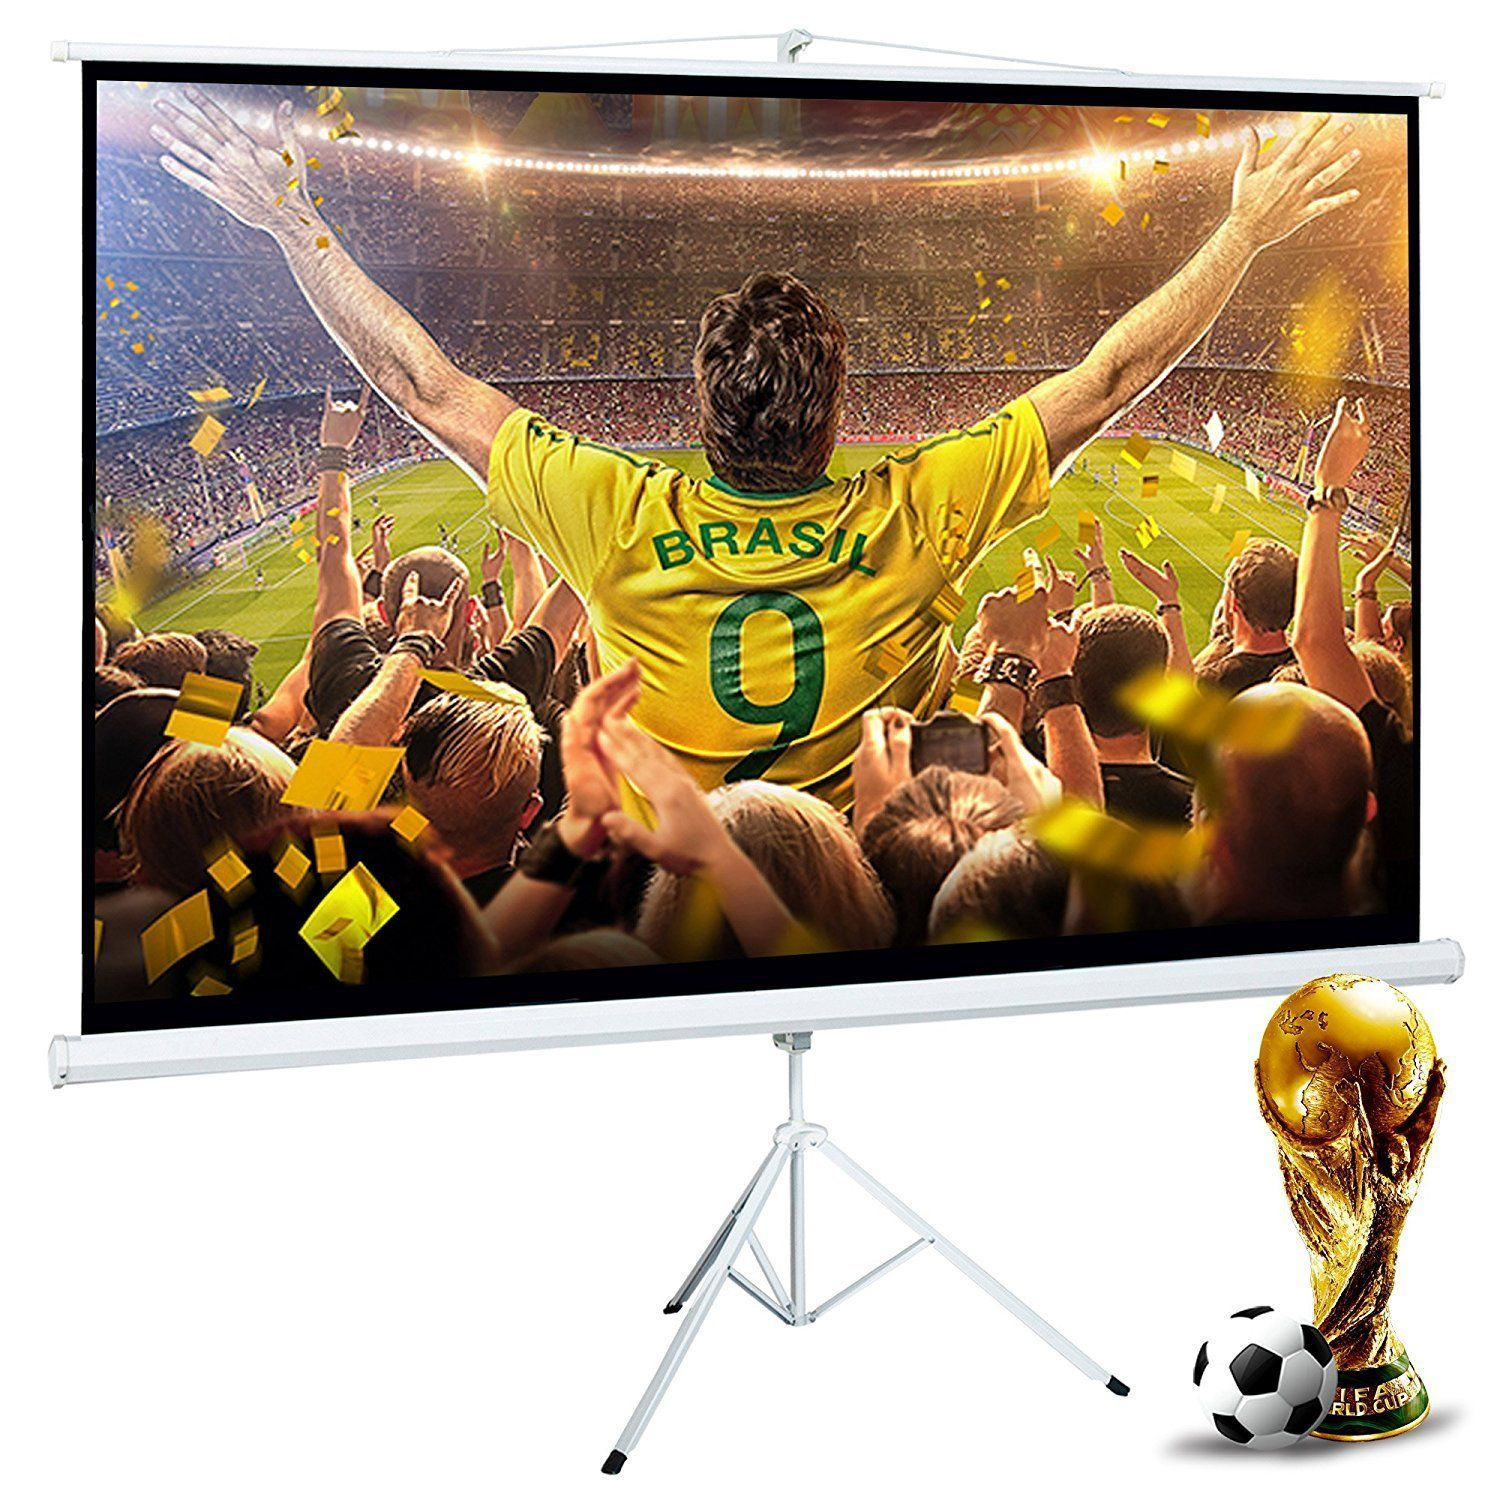 39 99 Cloud Mountain 100 Inch 16 9 Projector Screen With Stand Portable Indoor Outdoor Pull Up Tripod Stand Projection Projector Screen Stand Portable Projector Screen Projection Screen